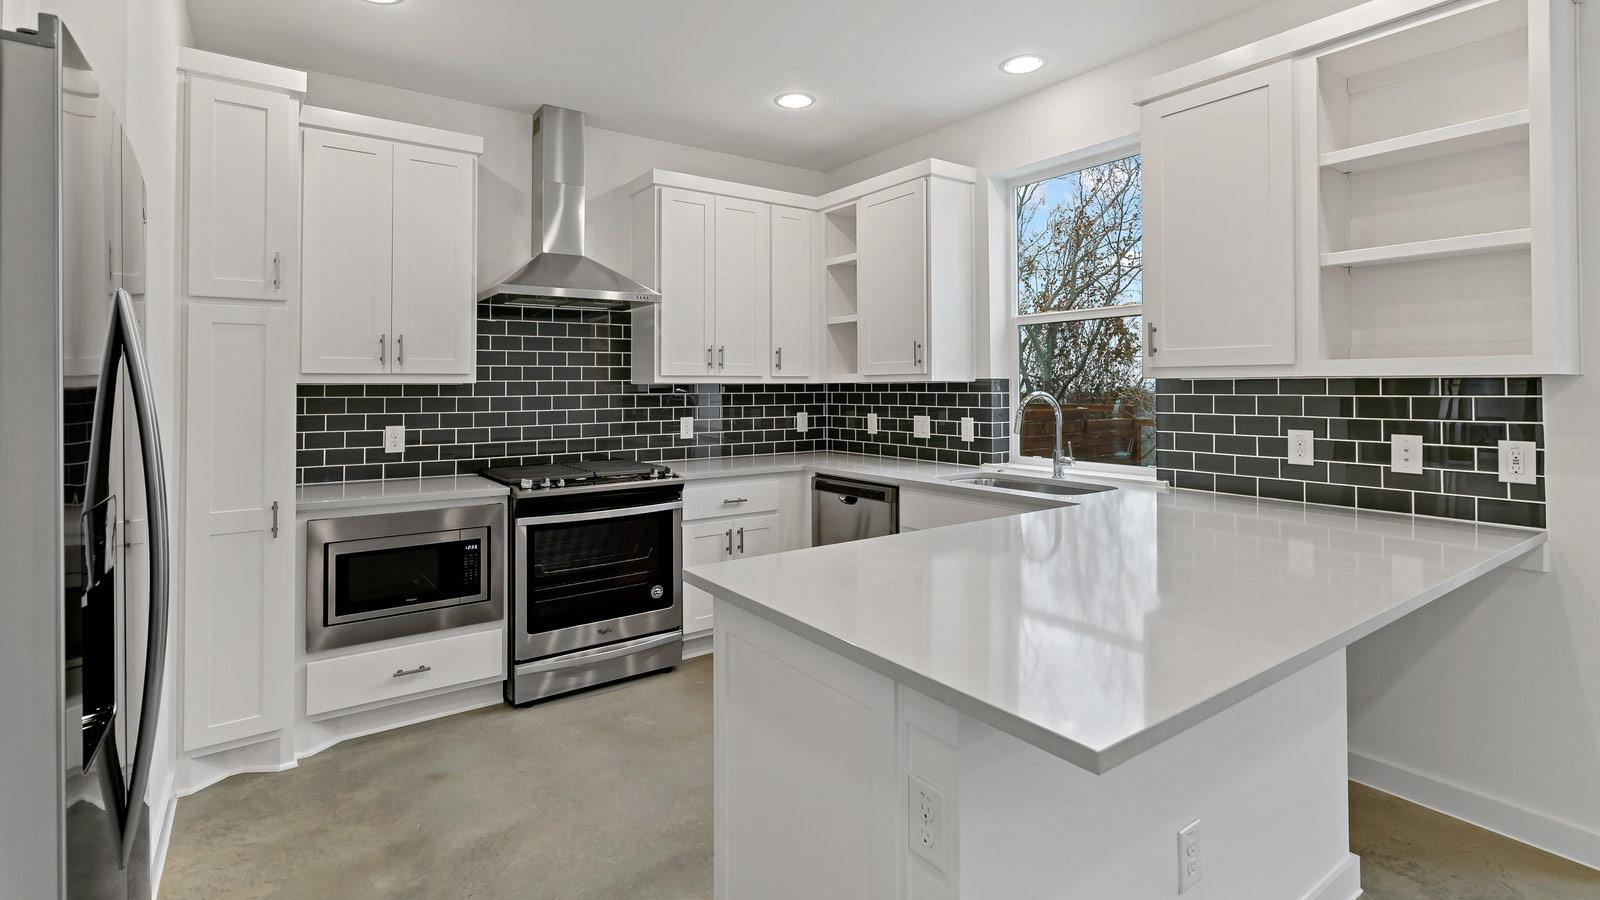 Kitchen featured in the Home E2 By StoryBuilt in Dallas, TX